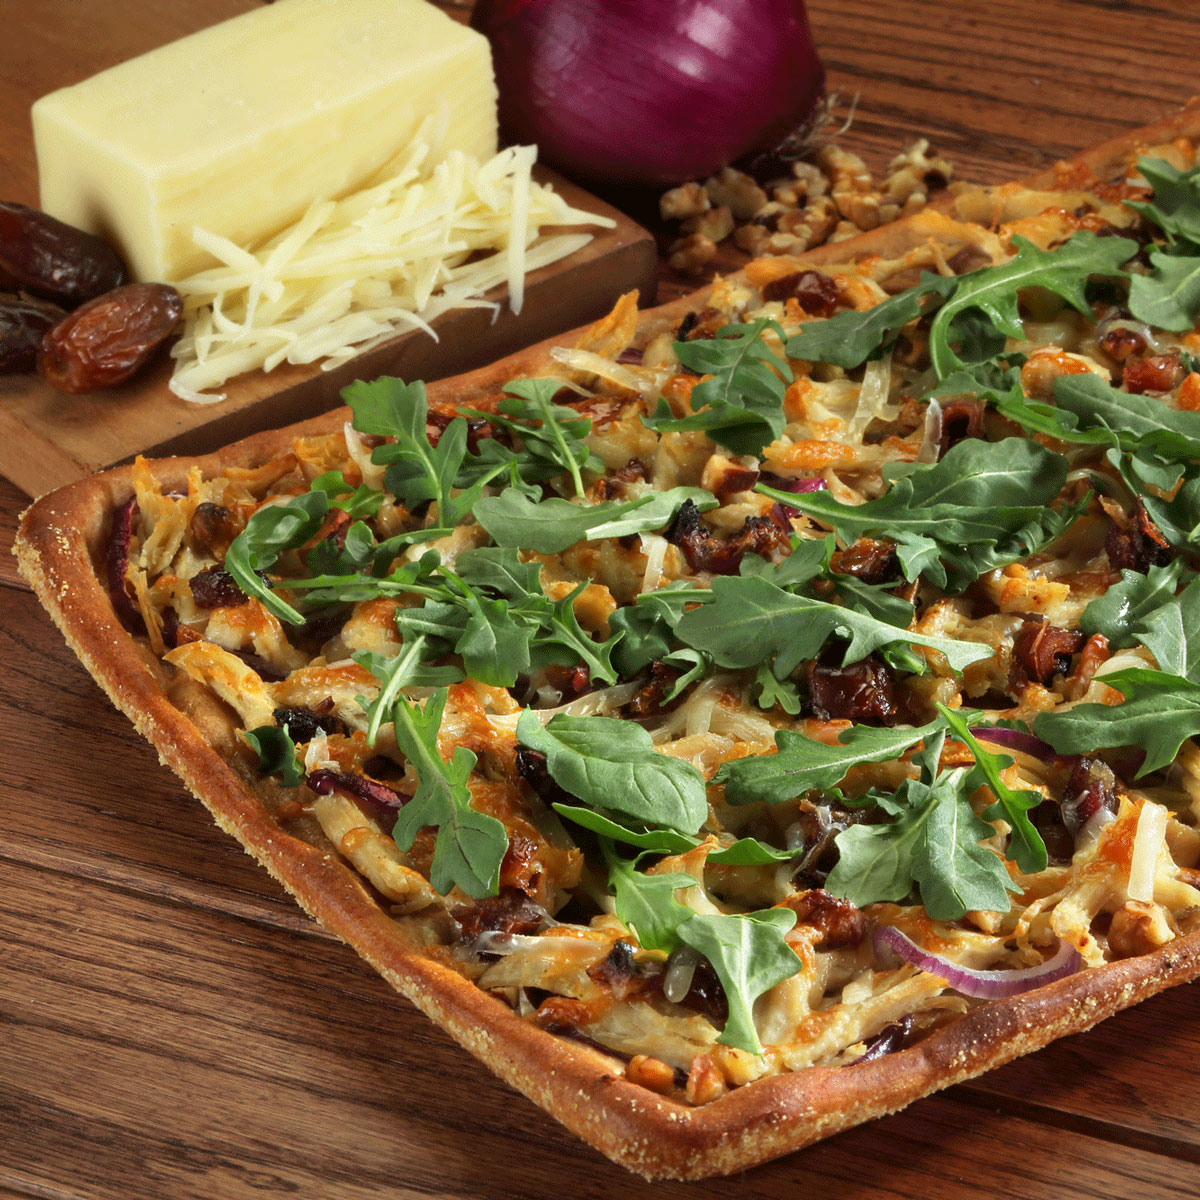 Shredded Chicken and Walnut Pizza